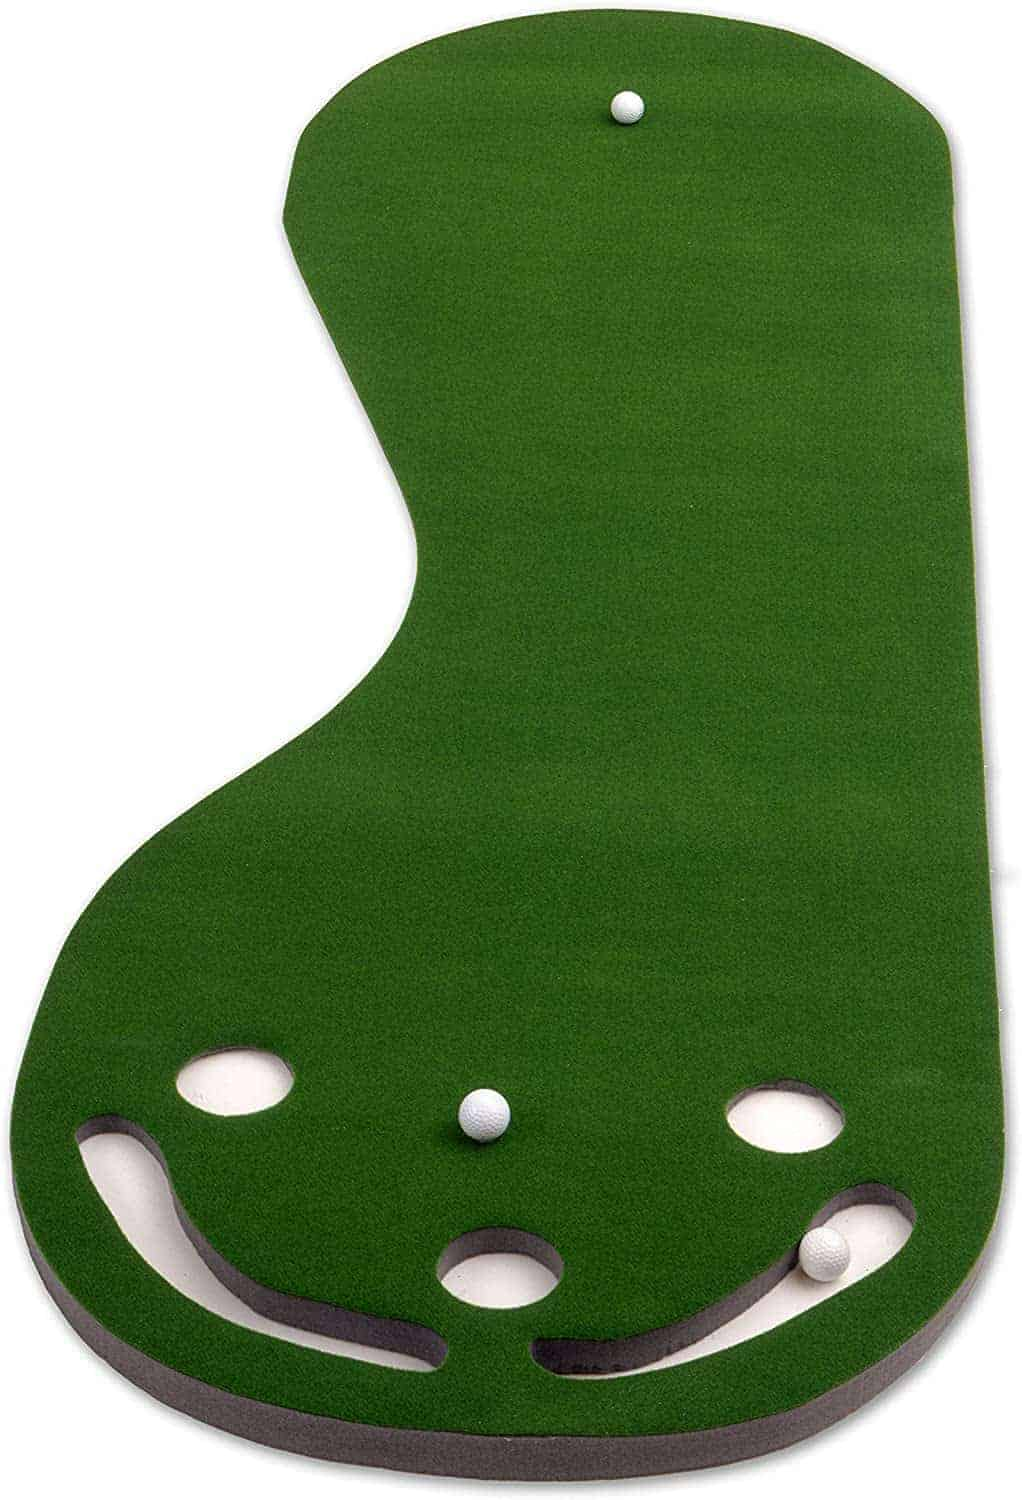 Indoor-Putting-Green-Fathers-Day-Gift-Ideas